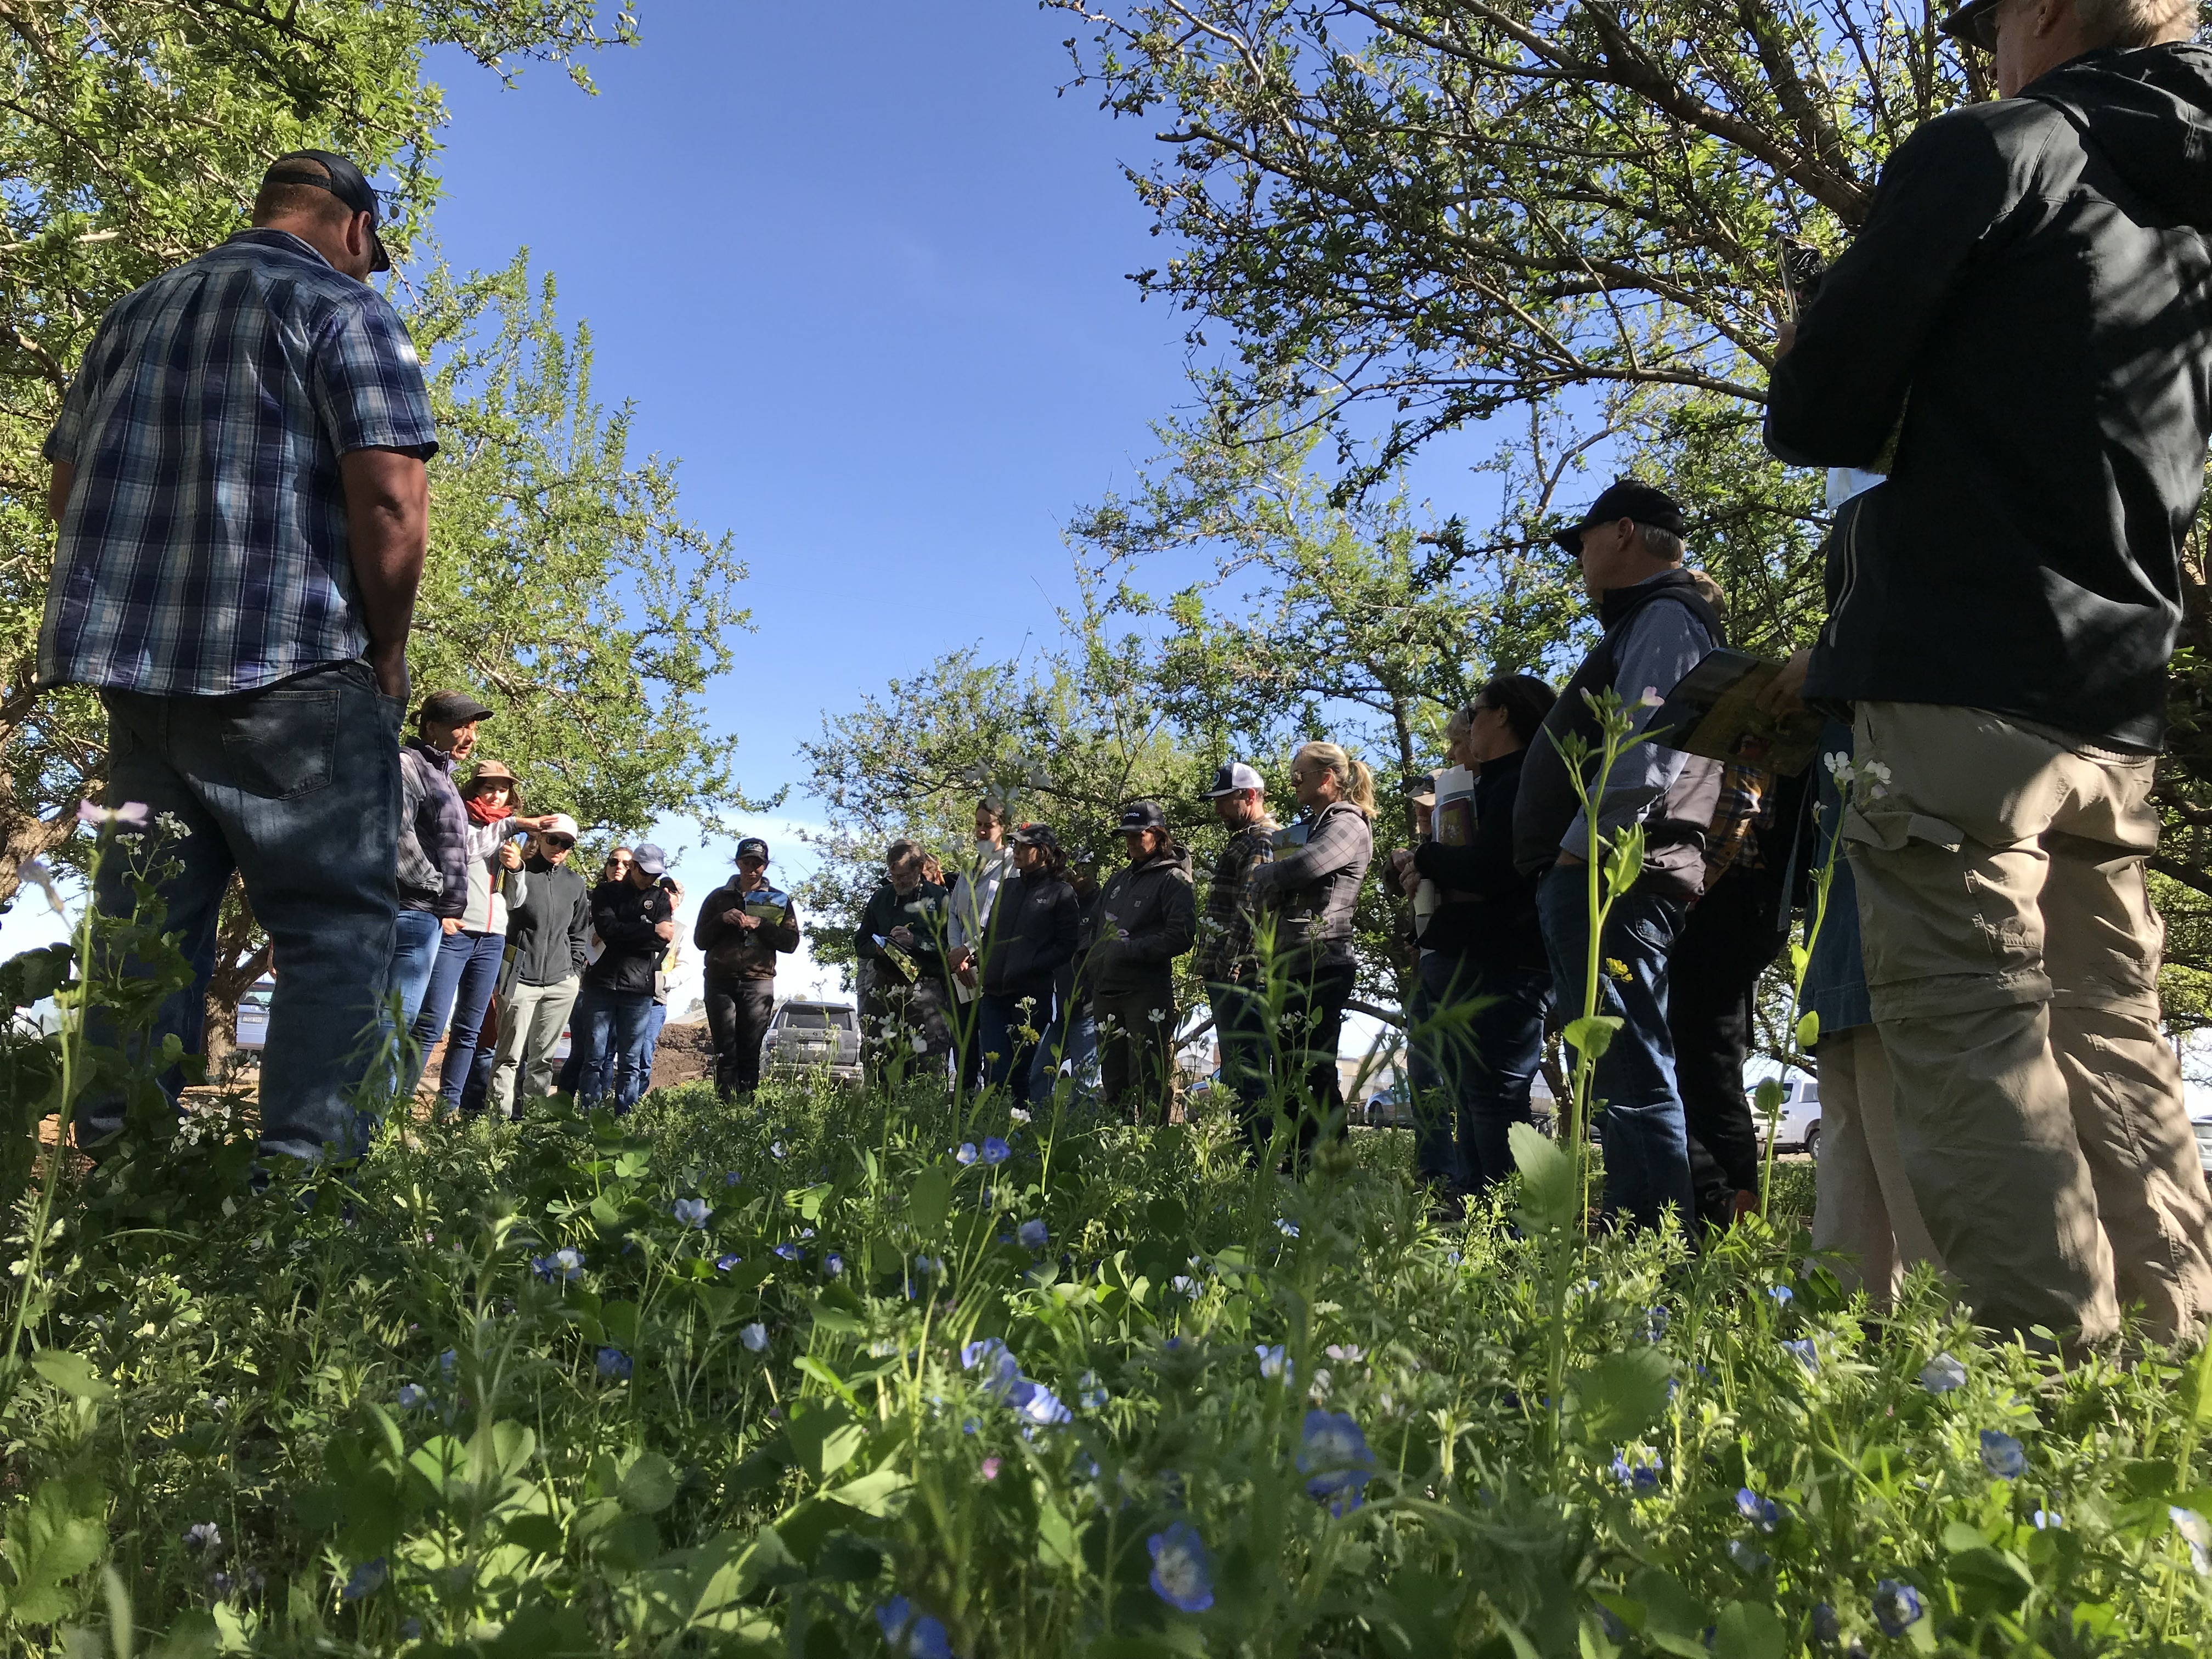 Xerces staff and almond growers standing in an orchard with small blue flowers as cover crops, underfoot.